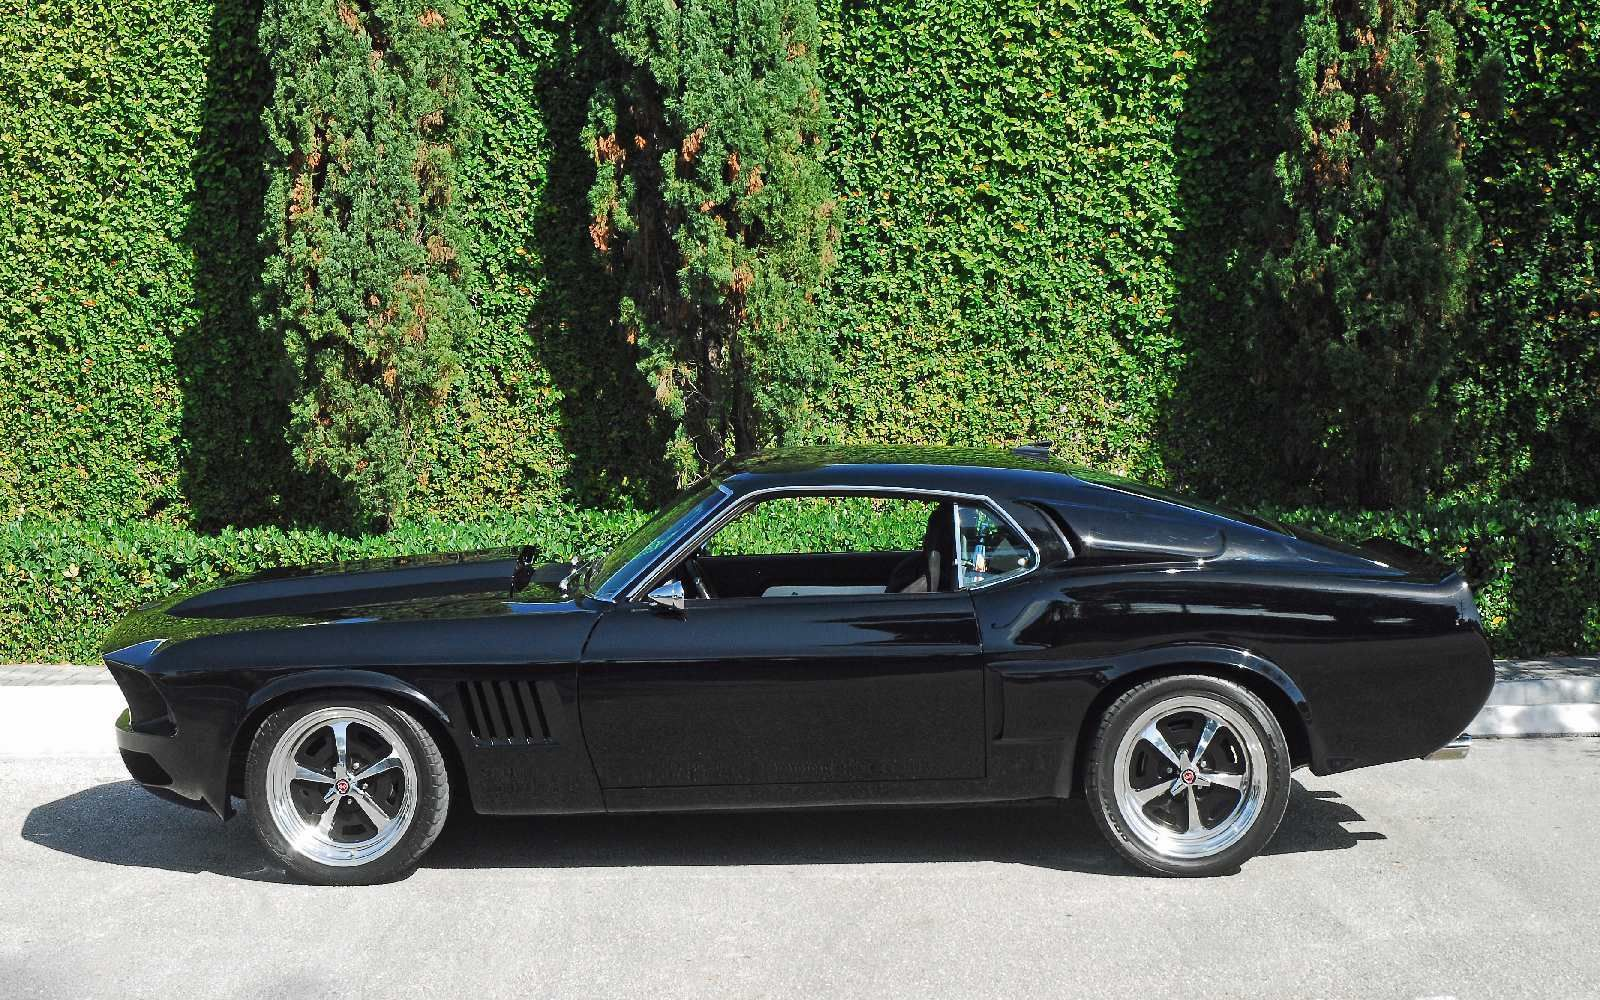 Resto Mod Cars For Sale: 1969 Ford Mustang Resto Mod For Sale: Photos, Technical